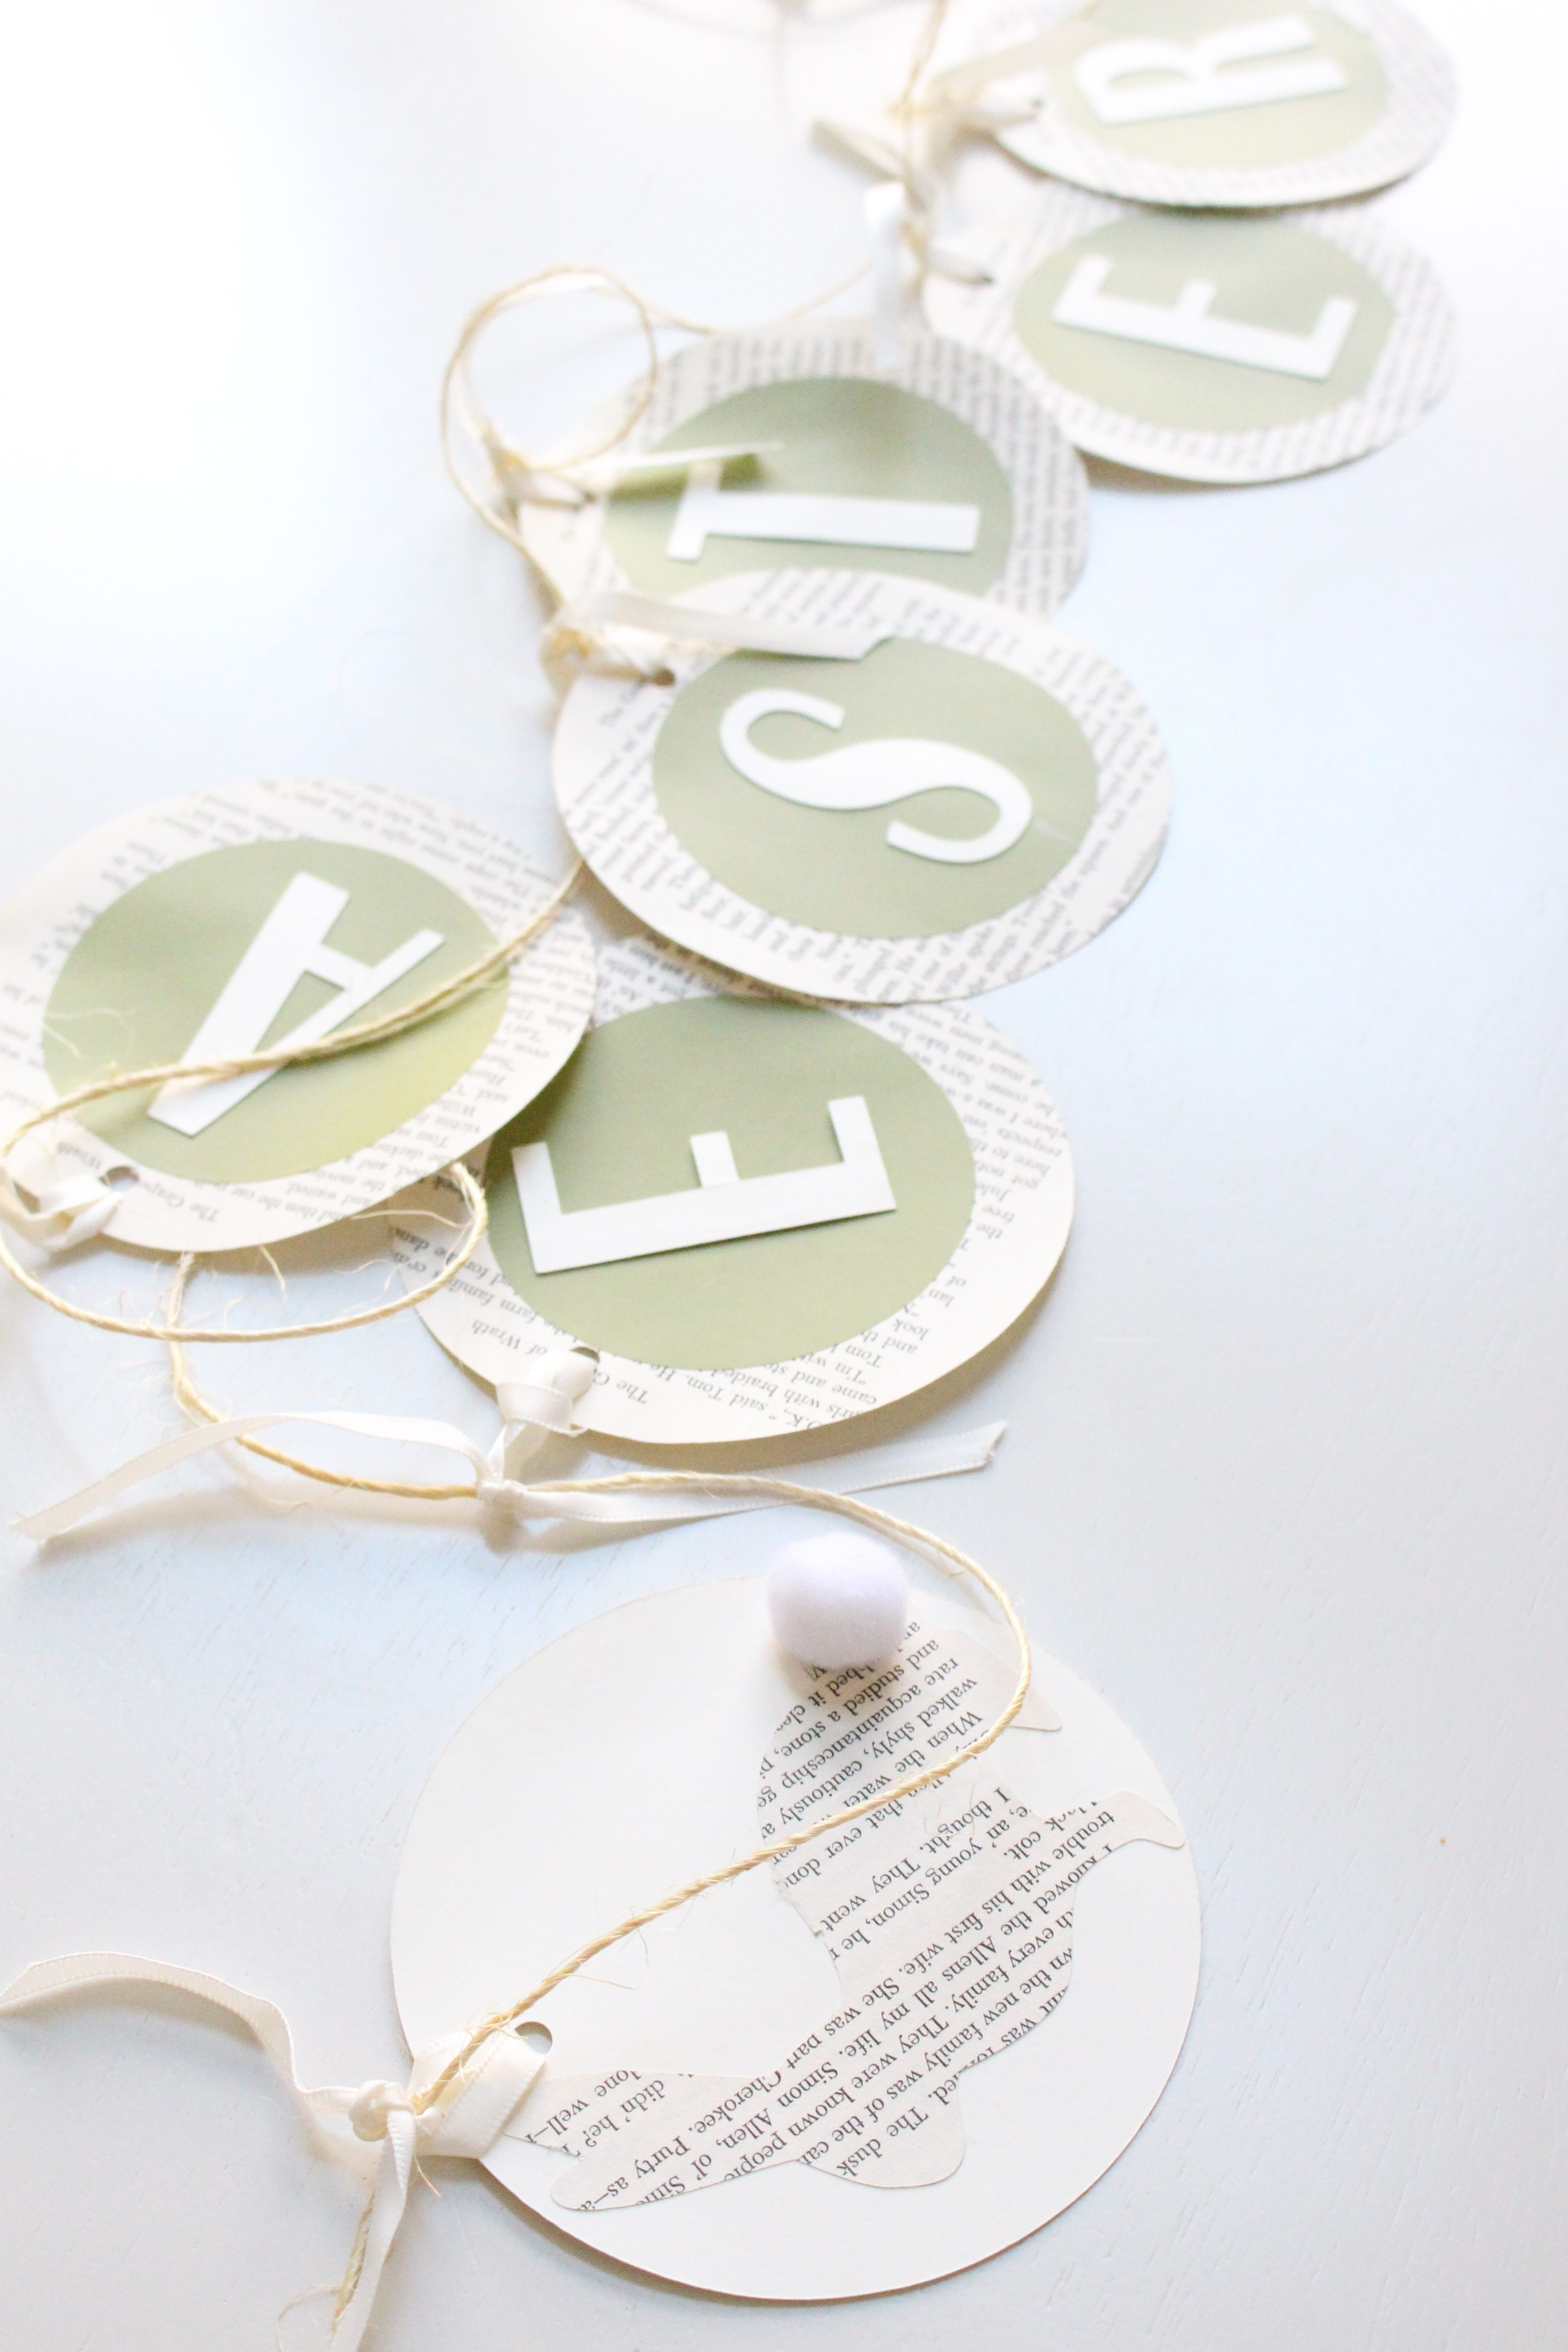 Book page crafts- Easter Garland- DIY garland- projects using book pages- Holidays- Easter crafts